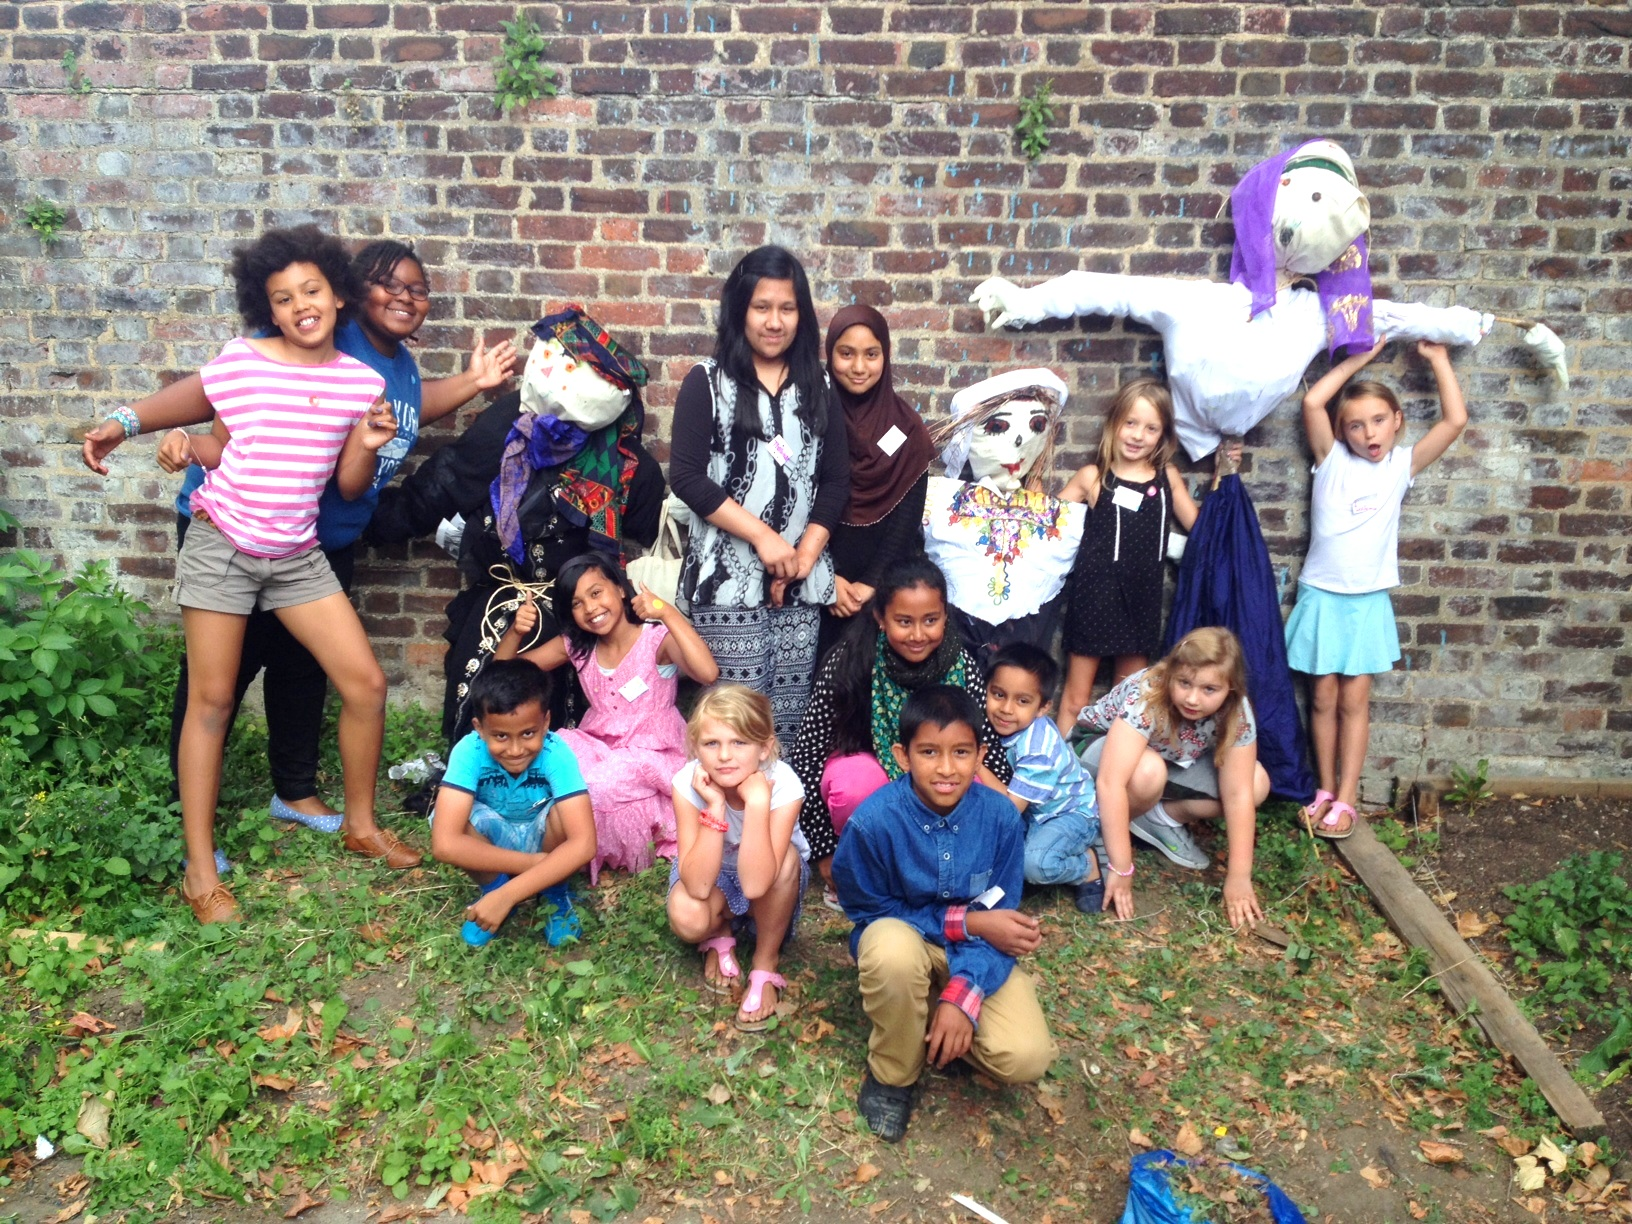 KIDS PLAYSCHEME   Our Playscheme for children 6-12 years old provides summer holiday activities to some of the most disadvantaged children in the UK.   Learn more